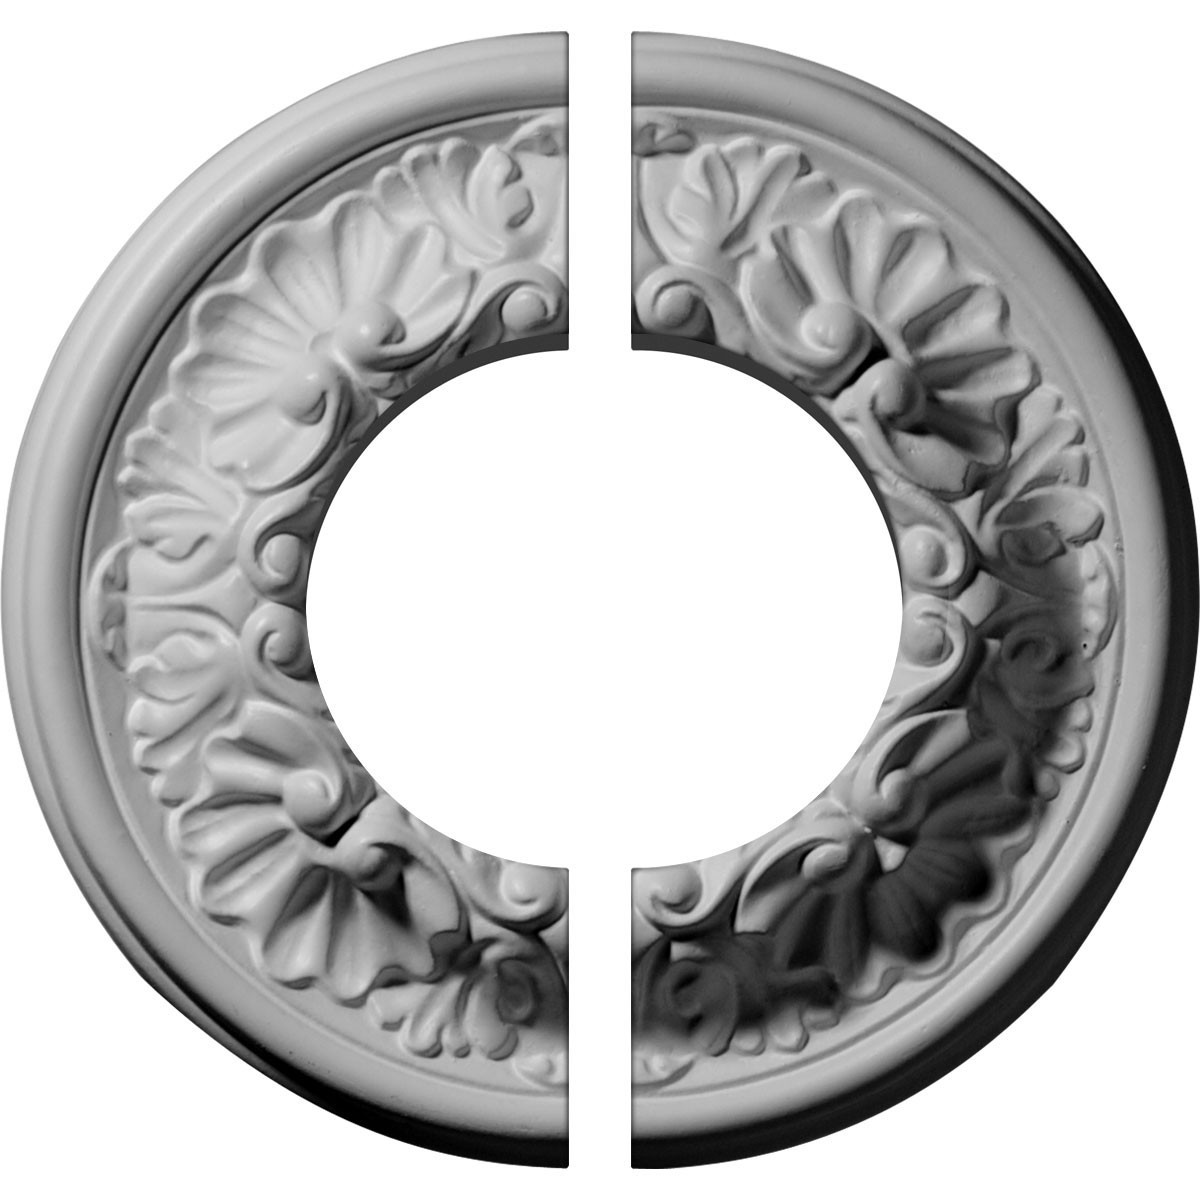 """EM-CM07OD2-03500 - 7 1/2""""OD x 3 1/2""""ID x 1 1/8""""P Odessa Ceiling Medallion, Two Piece (Fits Canopies up to 3 1/2"""")"""